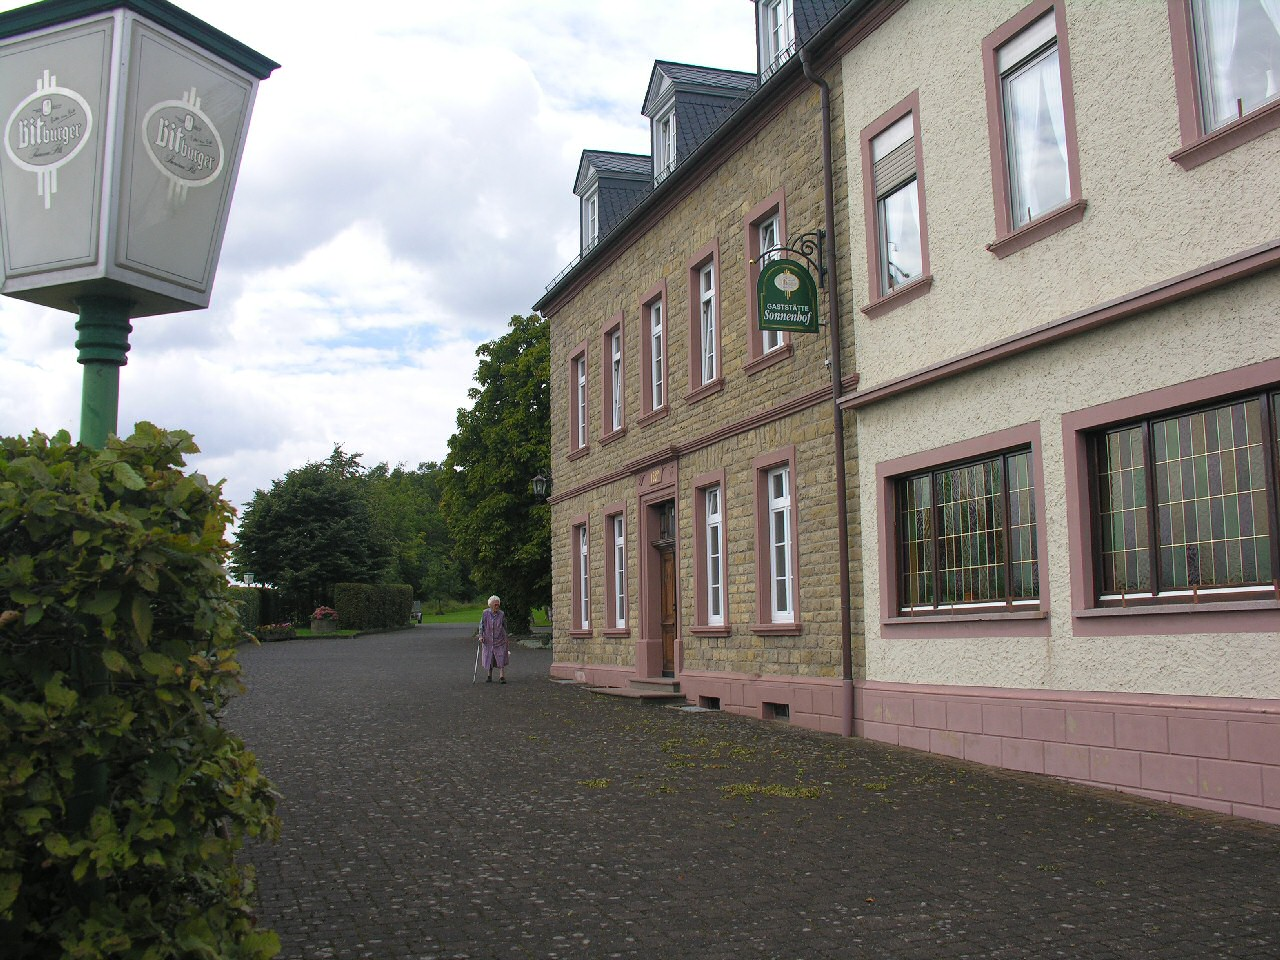 sonnenhof-gross-2007.jpg